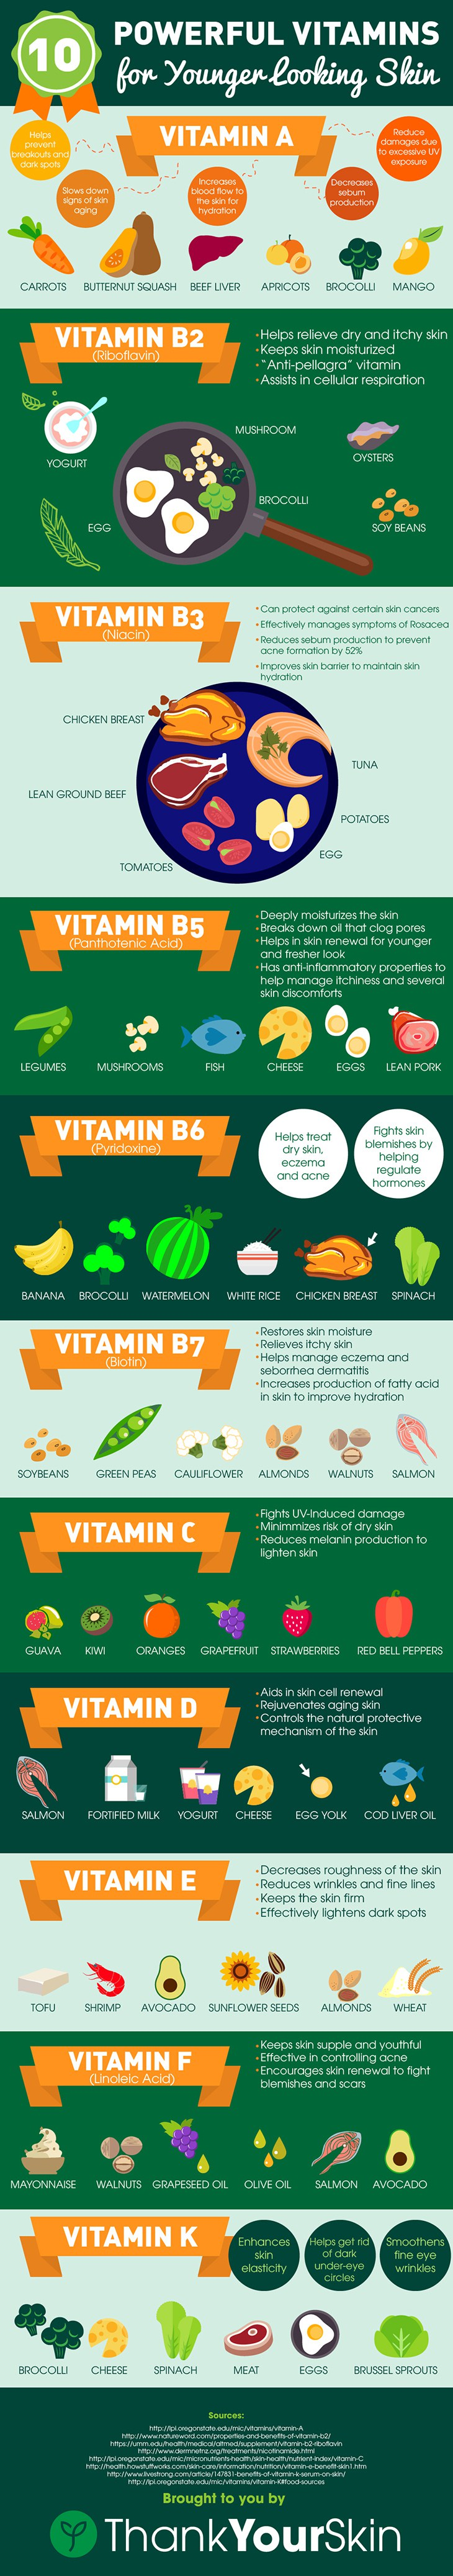 10 Essential Vitamins To Make You Look Younger Infographic